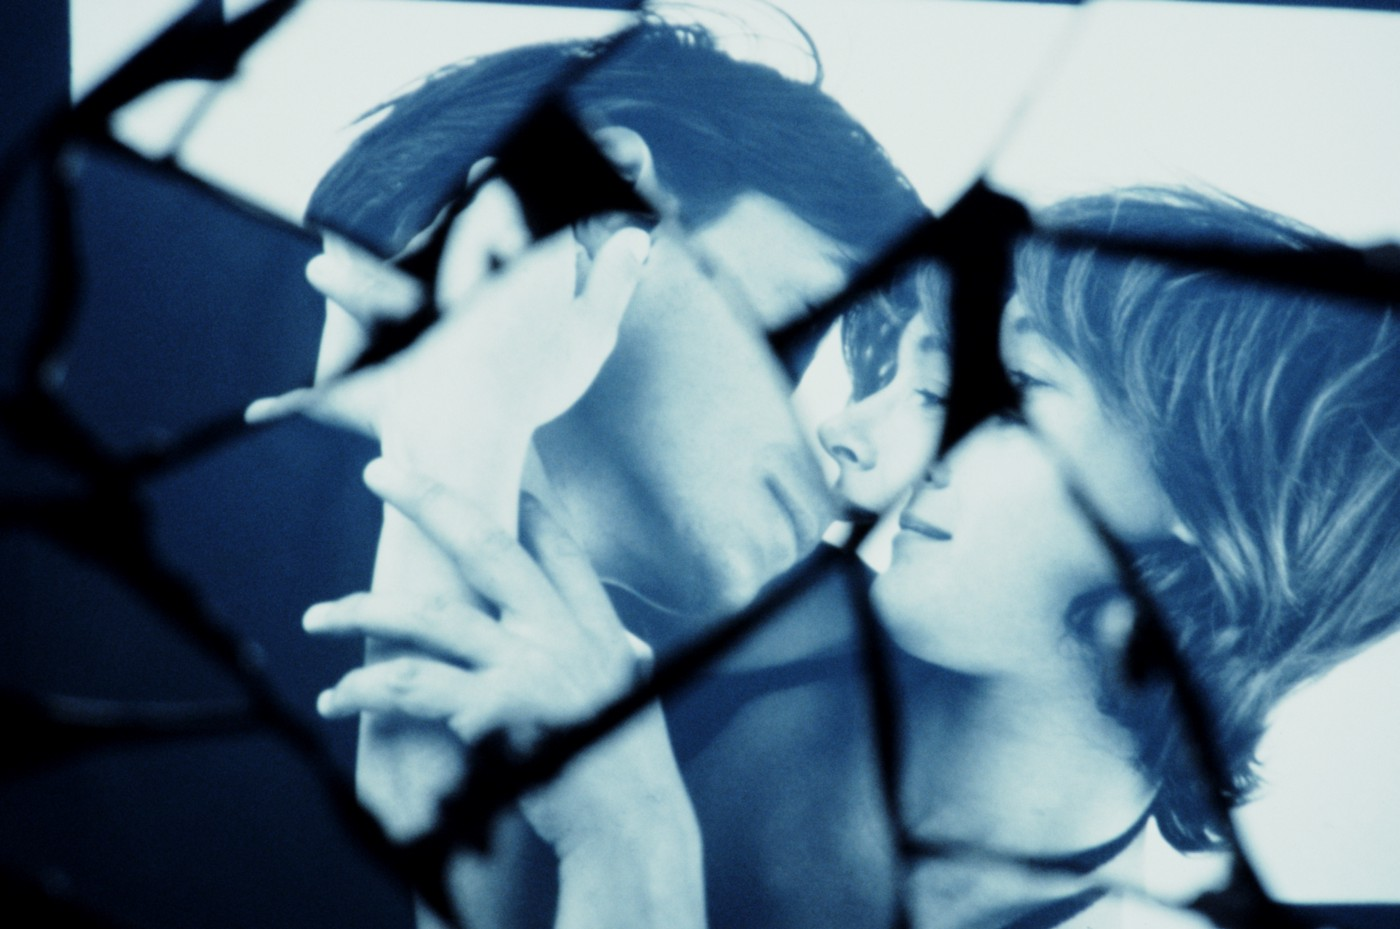 Shattered glass image of a man and woman about to kiss.